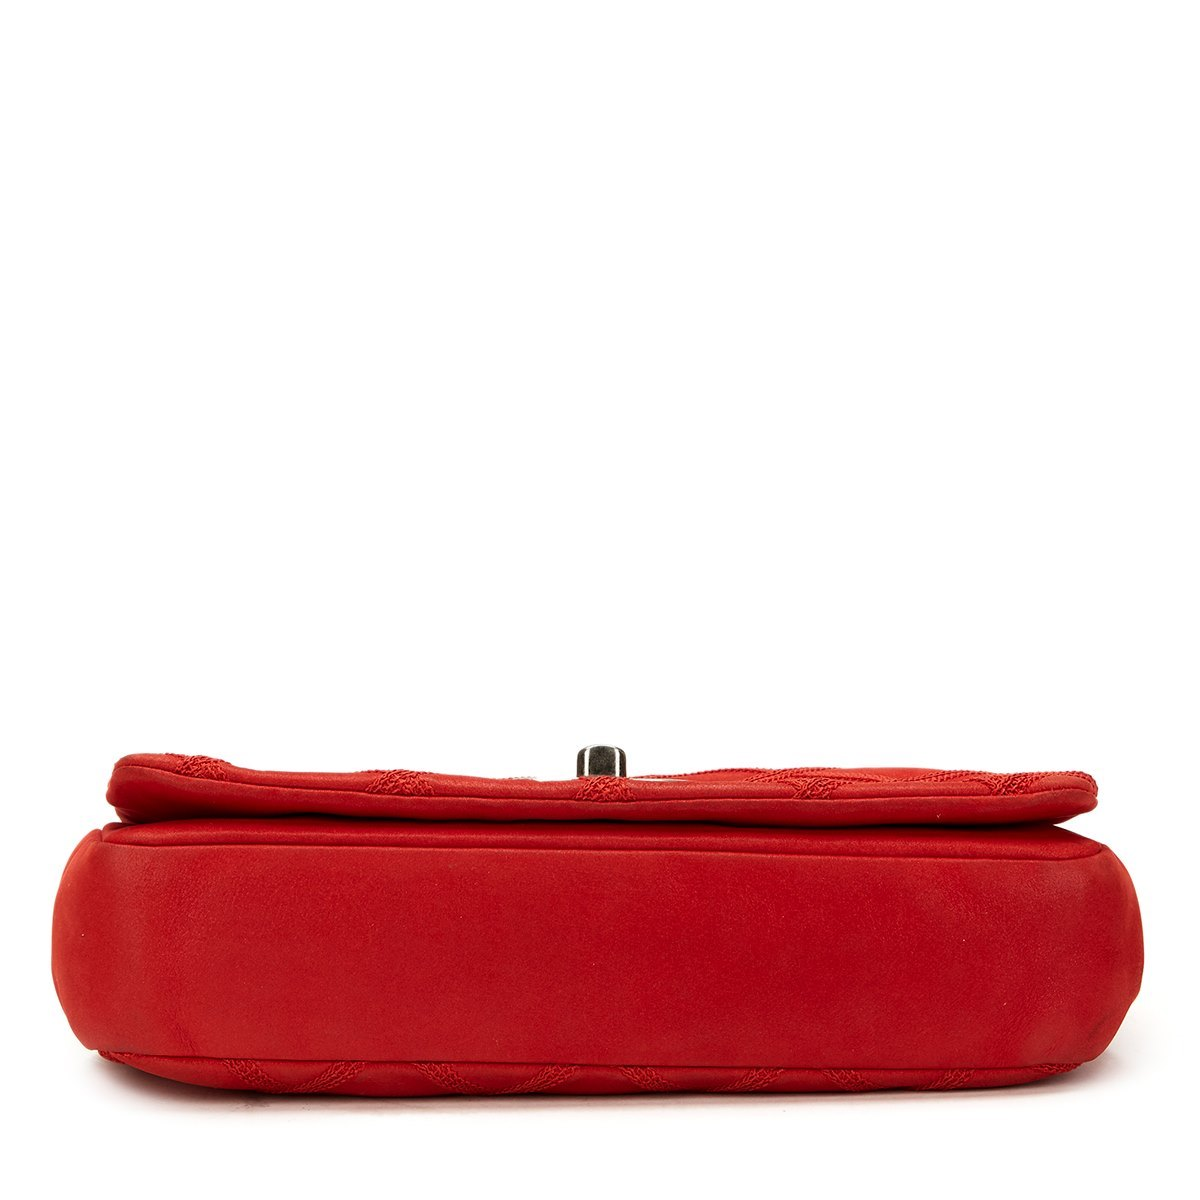 Id F 8754143 additionally 162493027149 besides Showthread likewise Red Ultimate Quilt Velvet Calfskin Single Flap Bag moreover 19703h Perforated Turner High Heat High Carbon Steel Blue Handle 8 L. on hardware 19703